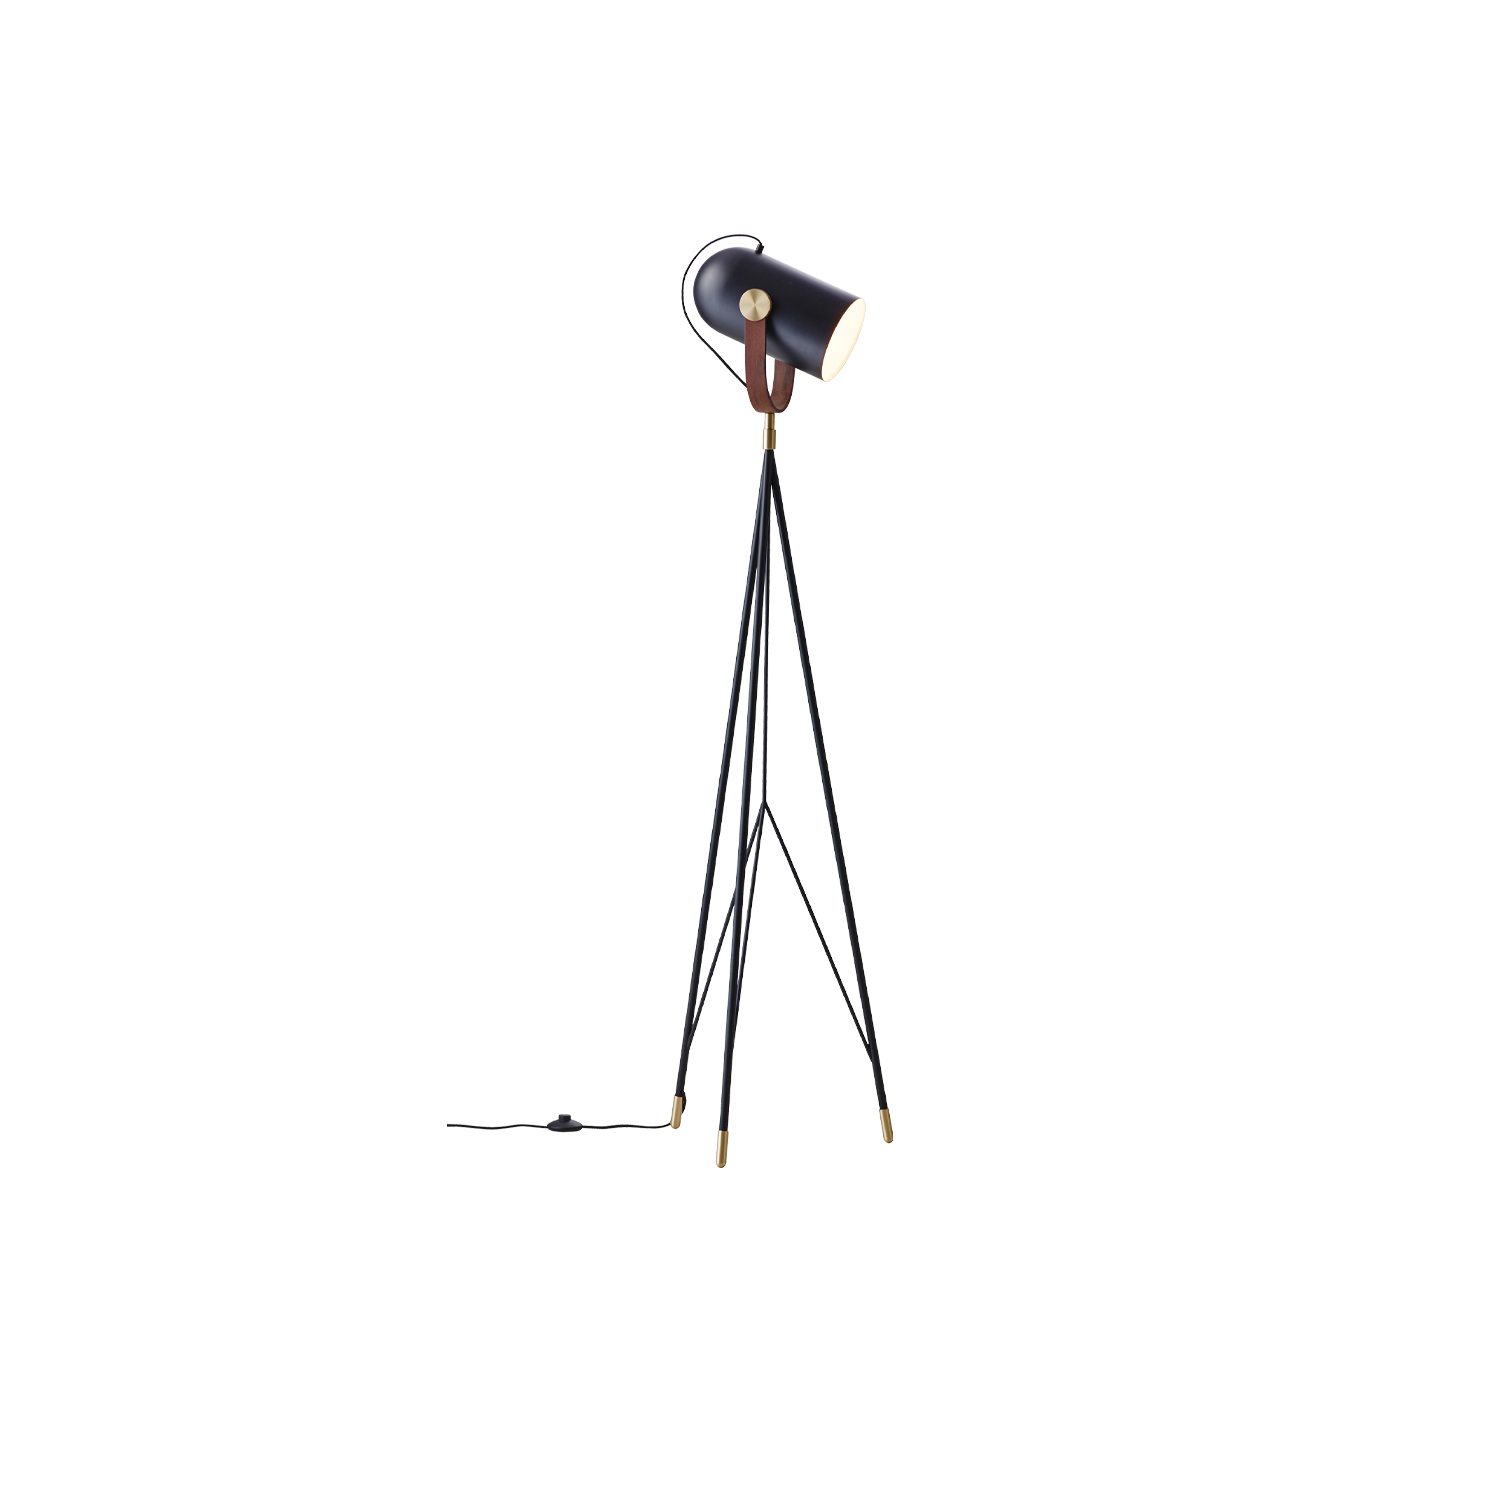 Carronade High Floor Lamp - This is truly a sculpture in lighting. The beautiful floor lamp exhibits craftsmanship at its finest. Iconic in design with a diffused face held atop an elongated geometric stand by way of a piece of skillfully manipulated solid American walnut and brass discs. Equipped with the multi-functionality of a traditional floor lamp and the ability to determine the direction of the light.   Carronade high floor lamp comes in a black or sand painted aluminium finish with brass or aluminium metal discs and American walnut or oak details. All models are fitted with LED light bulbs.   CARRONADE High exudes pure style and elegance in all surroundings. It is not difficult to see how designer Markus Johansson drew inspiration from 17th-century ship cannons as he created the CARRONADE lamp series. The idea of a small table lamp with a distinctive but playful shape of a small cannon was quite a challenge. Realizing gunpowder and cannonballs references by way of modern lighting technology then synchronized with 21st-century contemporary Nordic lighting designs was no simple task but very much a 'Eureka' moment.   Matter of Stuff